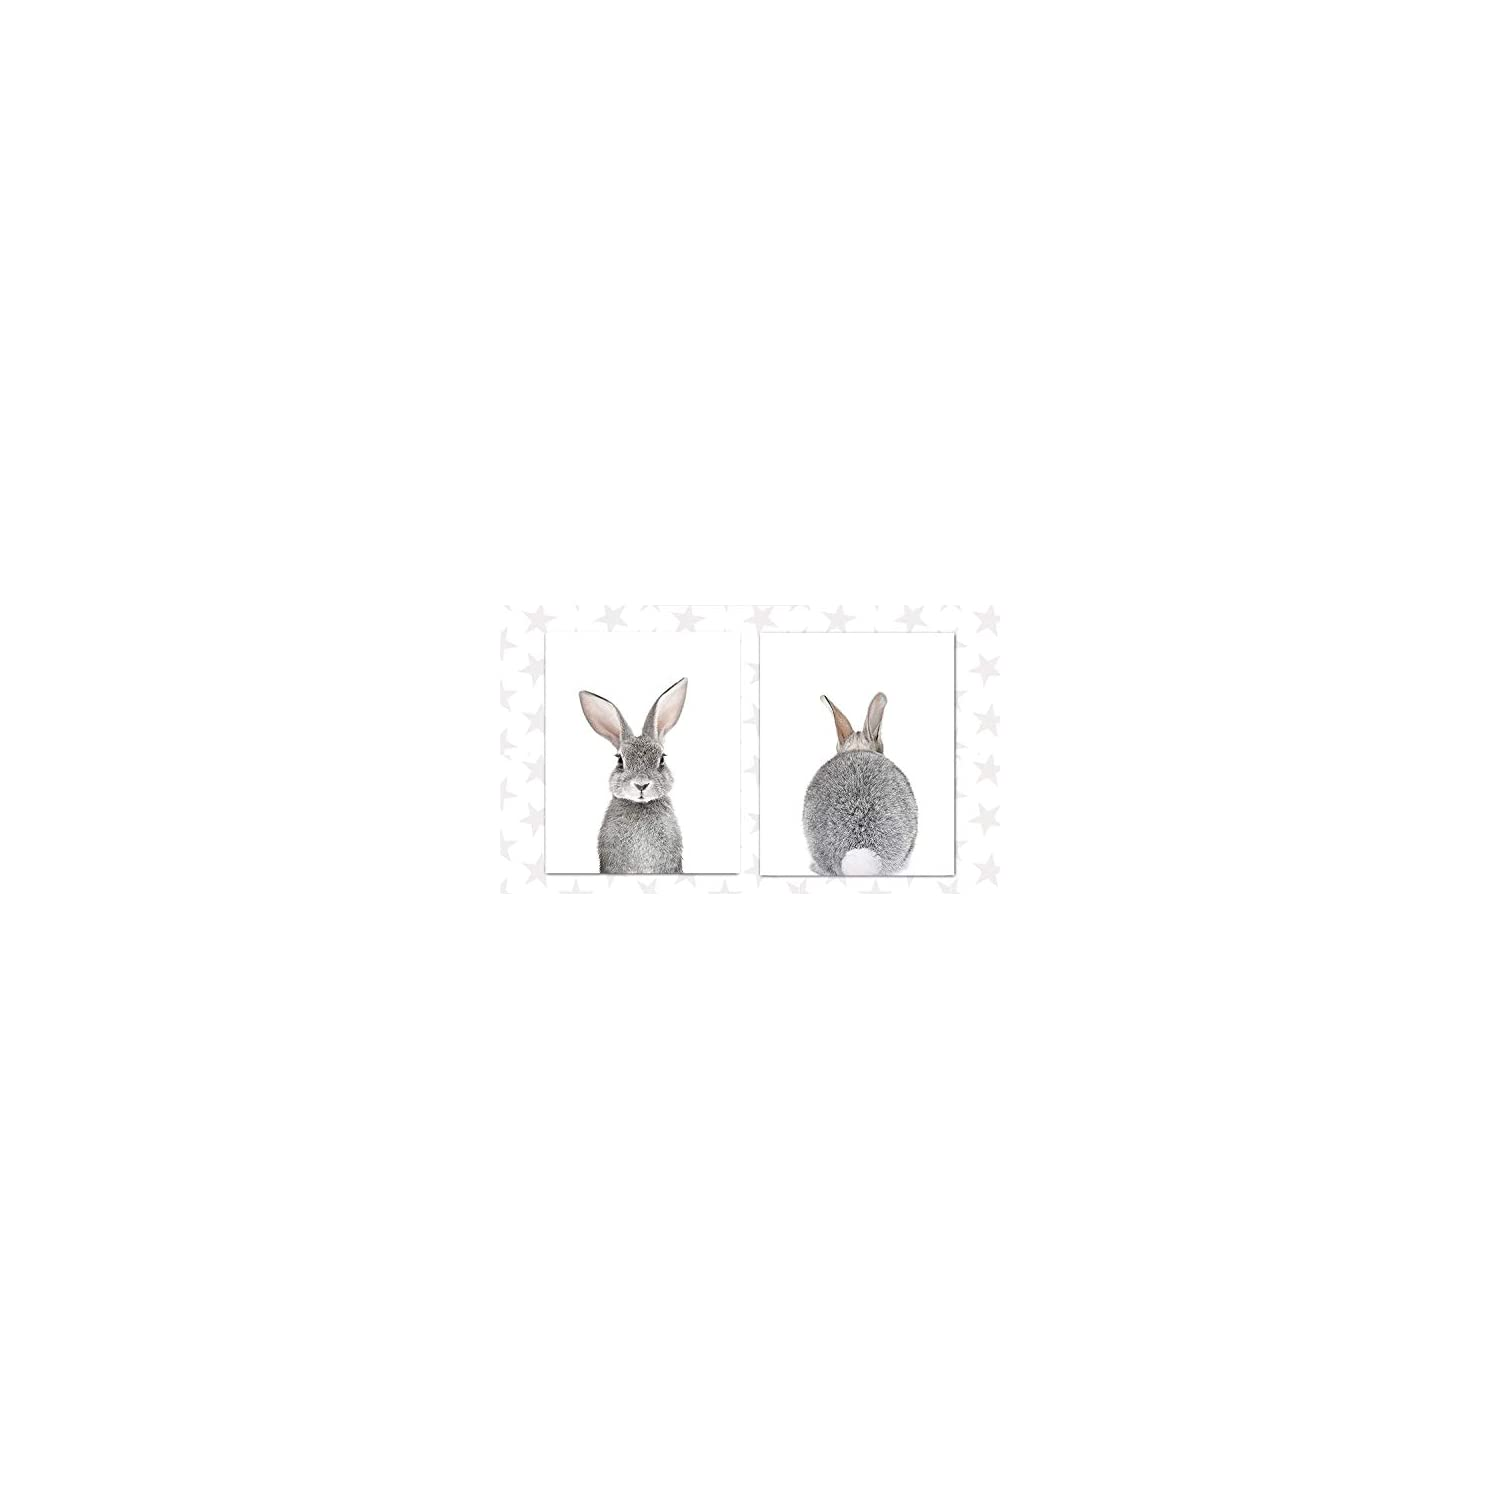 Designs by Maria Inc. Baby Nursery Wall Decor Art – Set of 2 (UNFRAMED) Wall Artwork 8×10 Baby Bunny Front and Back Photographic Print